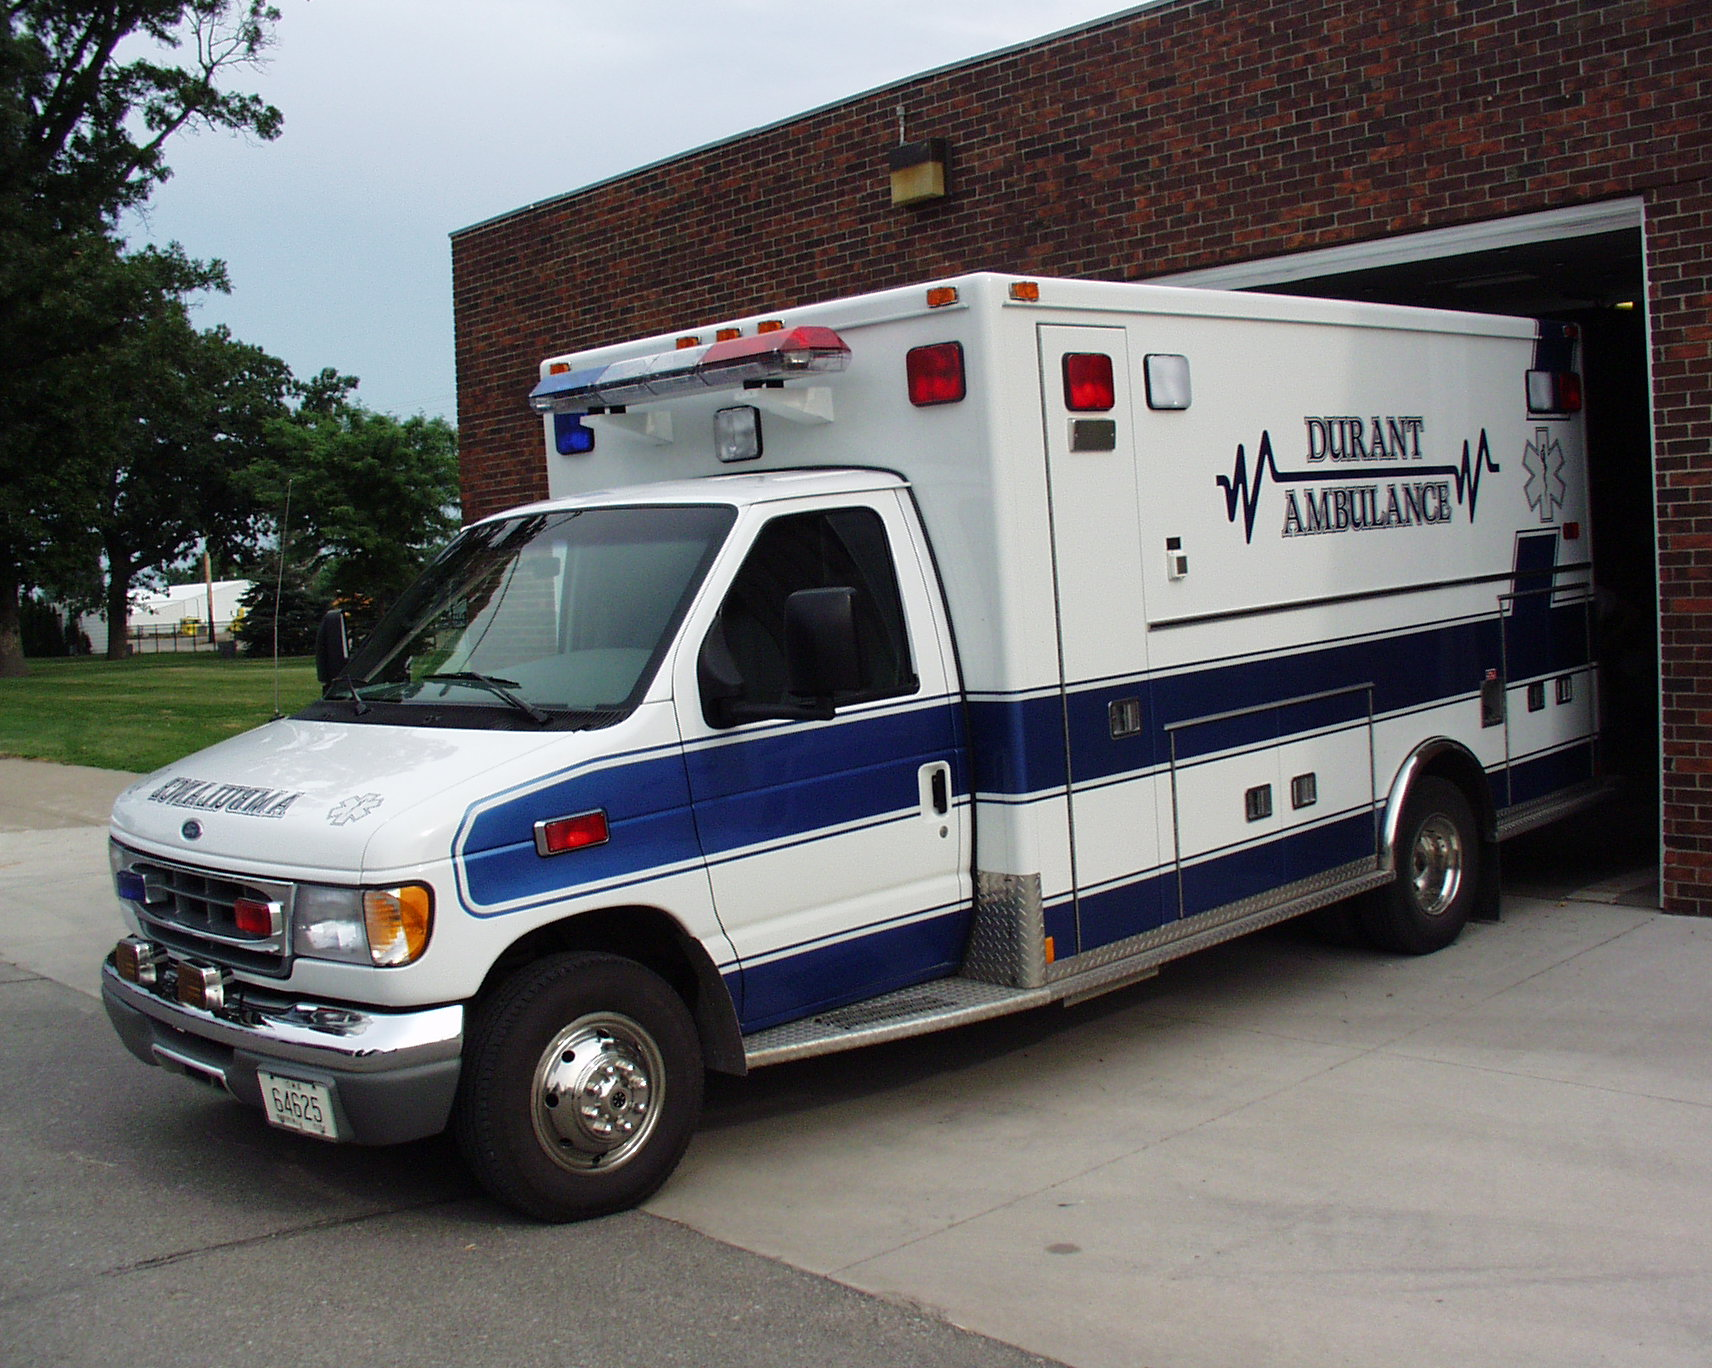 Iowa counties could see changes in property taxes to assist EMS departments